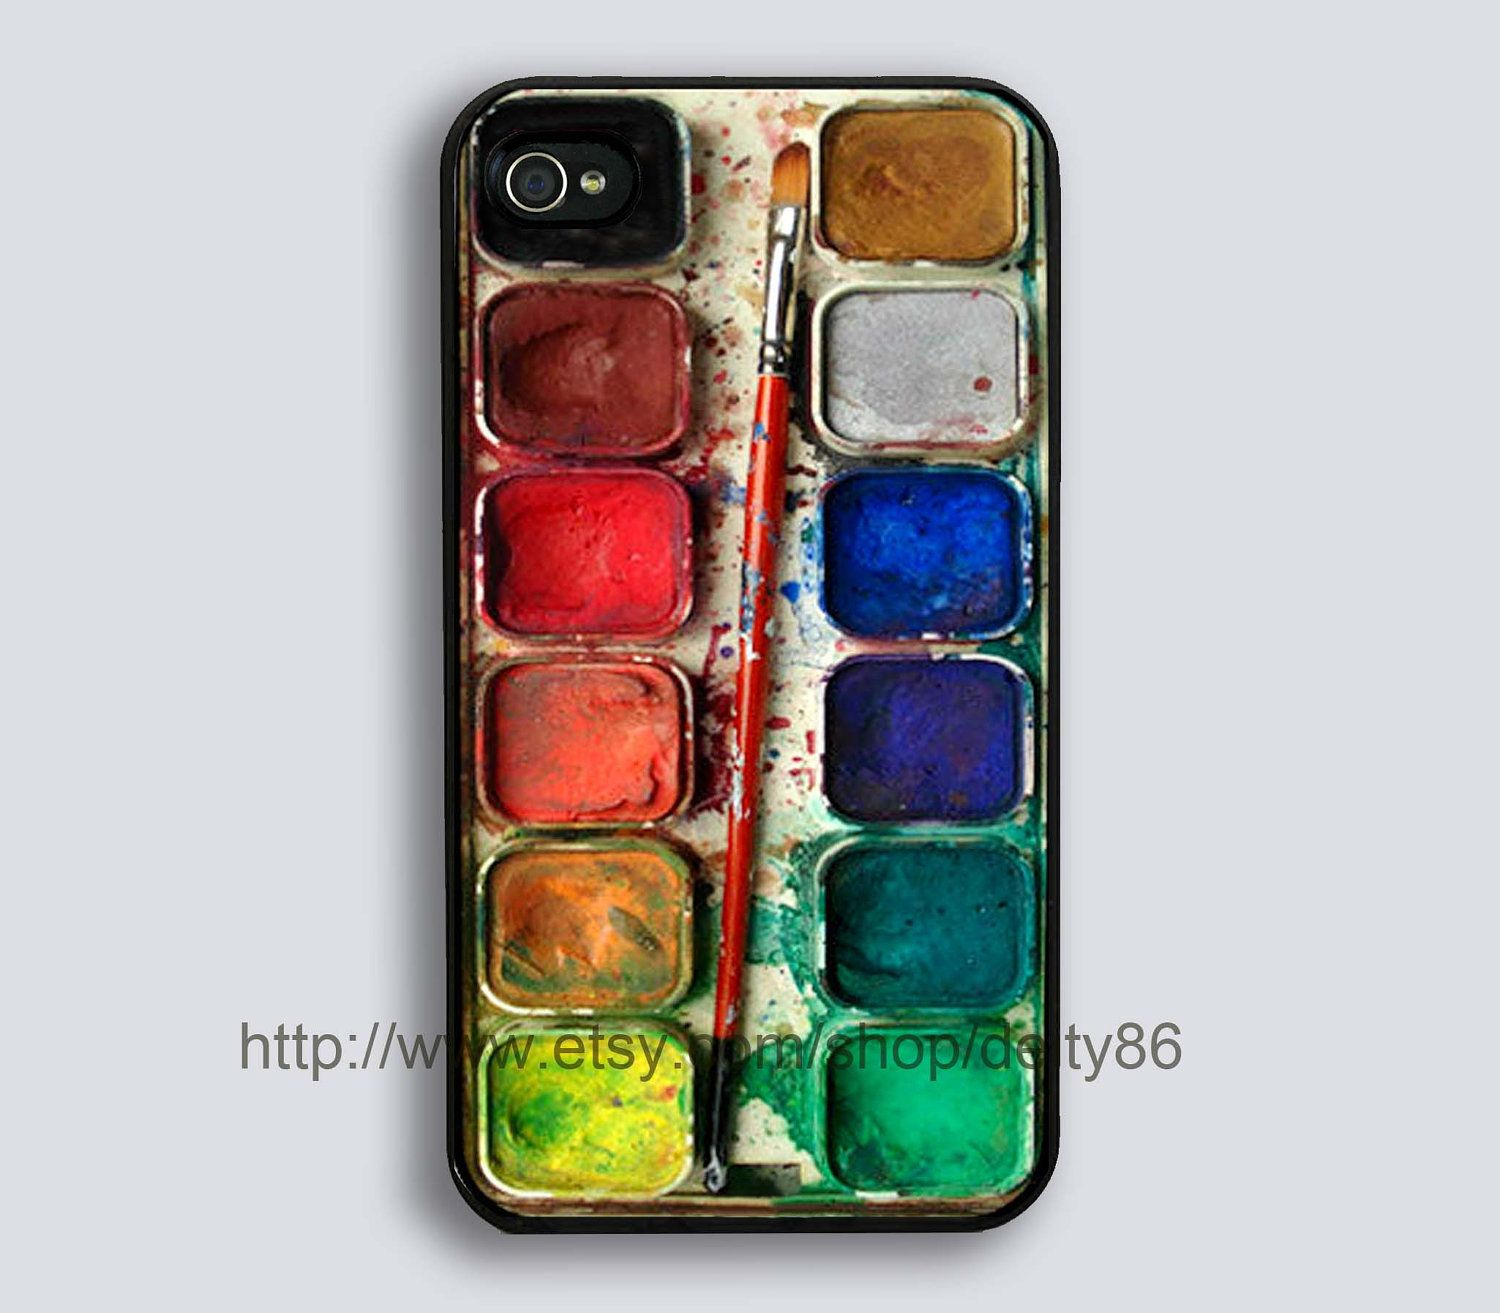 1d1eda4be22 iPhone Watercolor case | Extraordinary Phone Cases | Iphone 5c cases ...